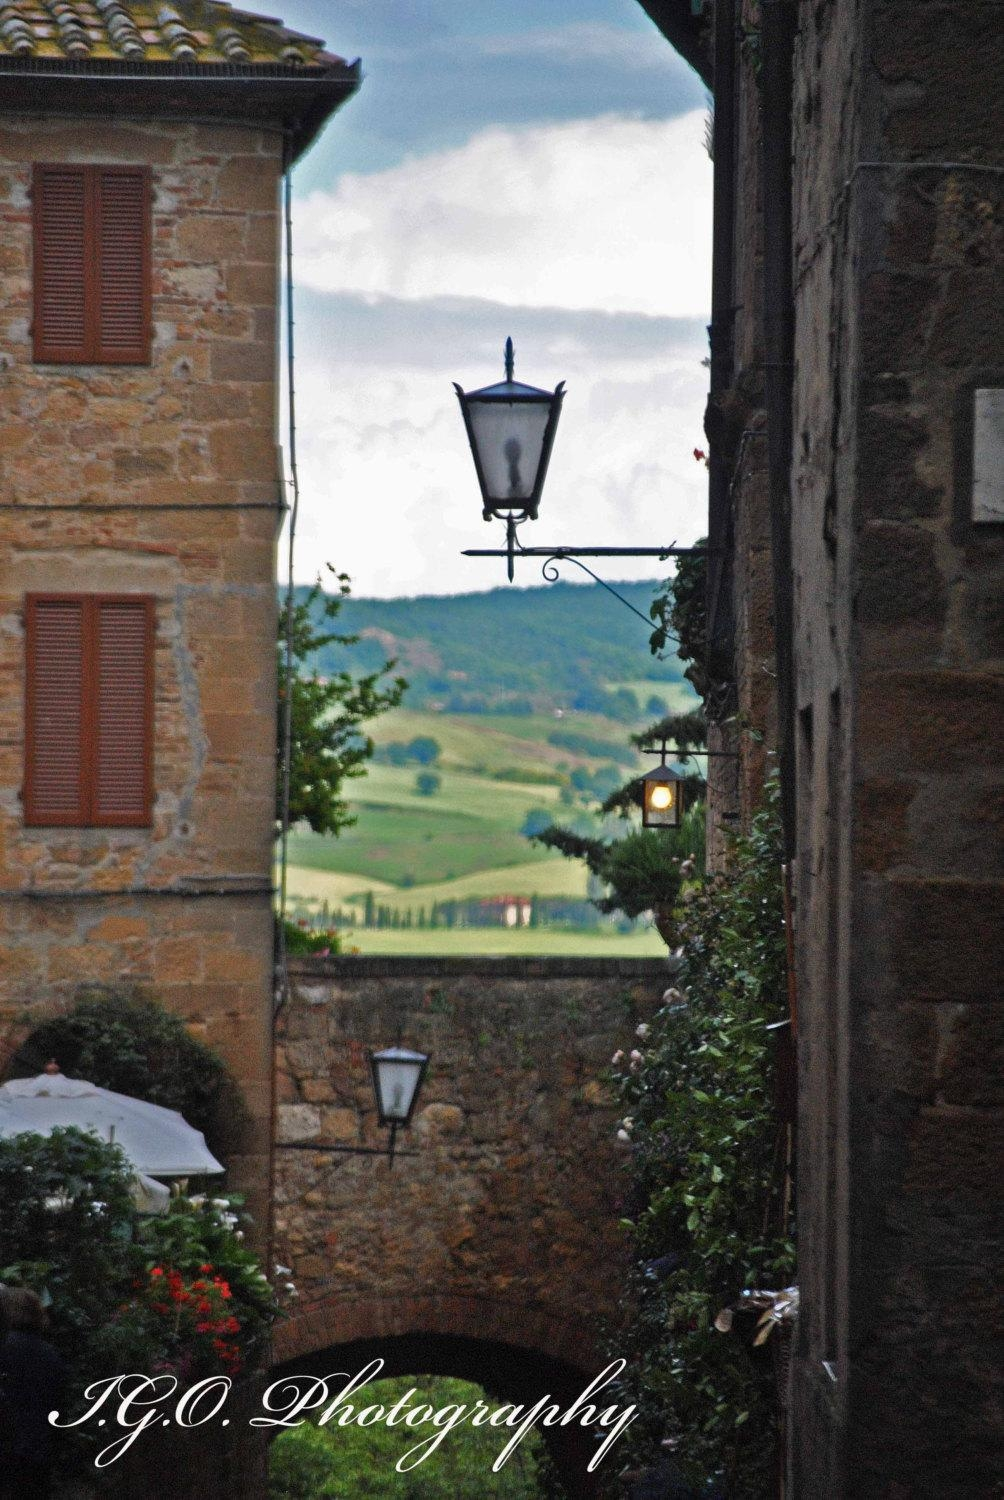 Sale Tuscany Countryside Landscape And Architecture With Regard To Italian Countryside Wall Art (View 20 of 20)